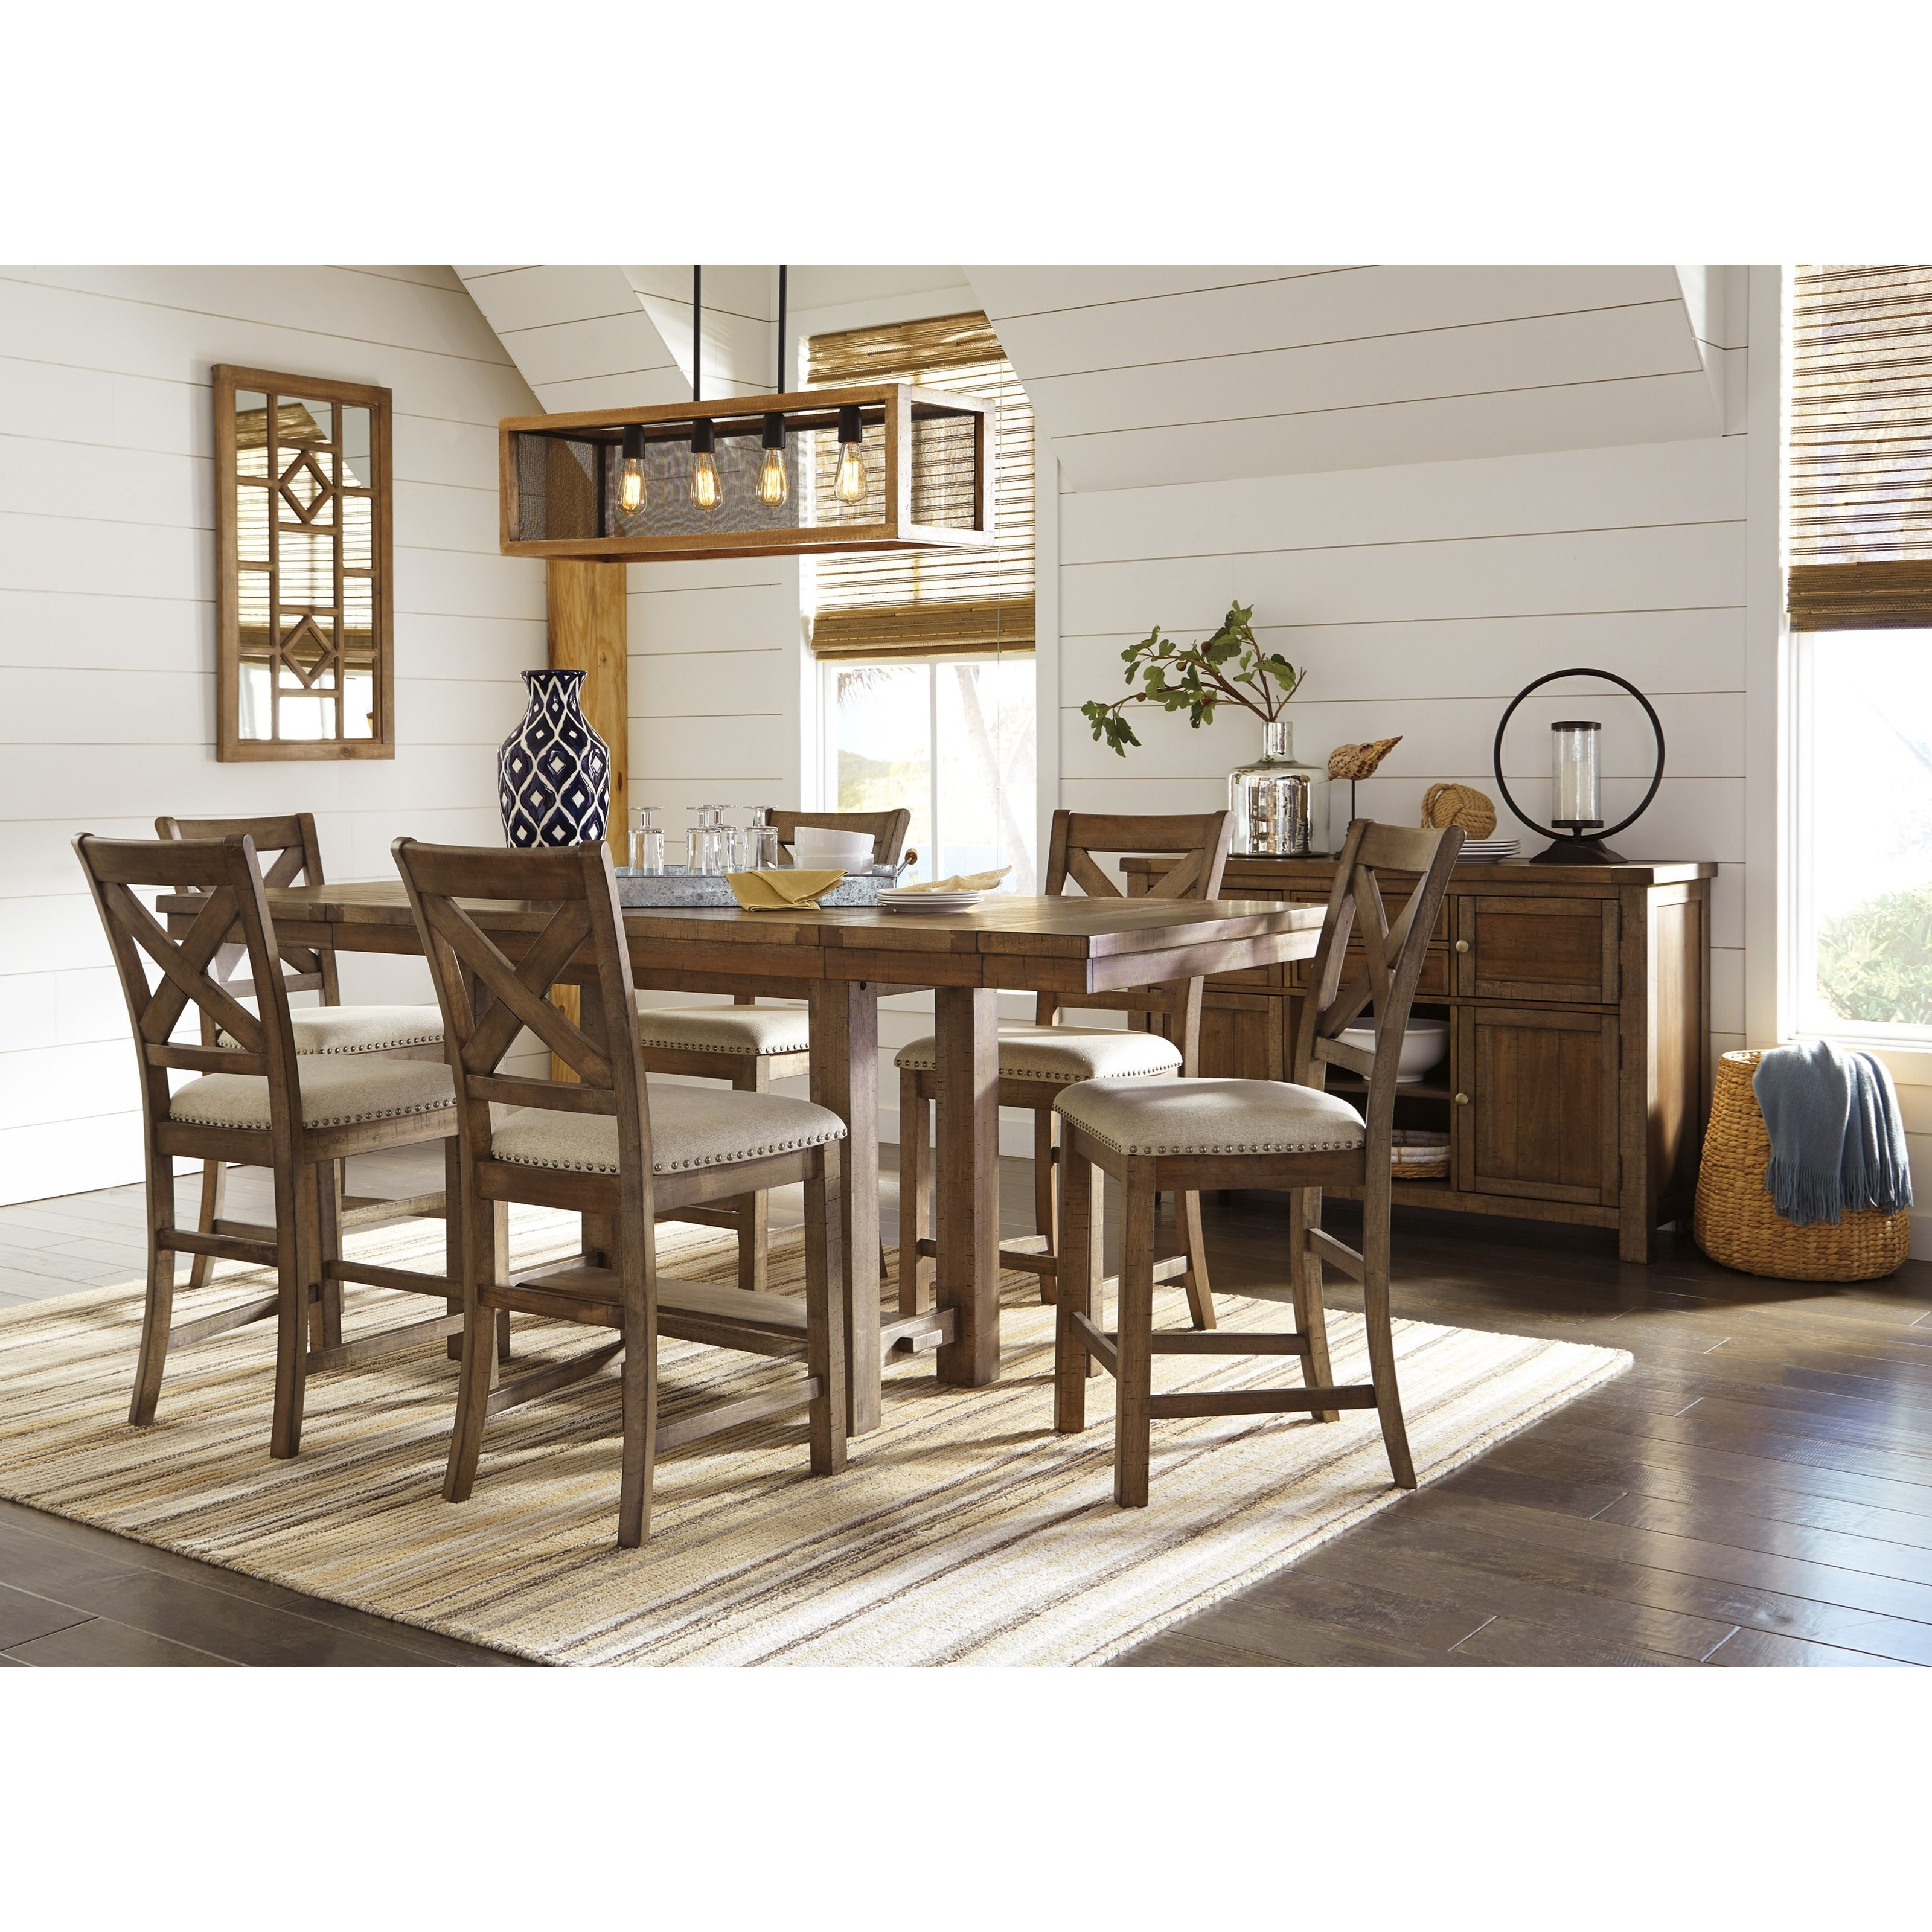 Moriville Dining Room Group by Signature Design by Ashley at Northeast Factory Direct